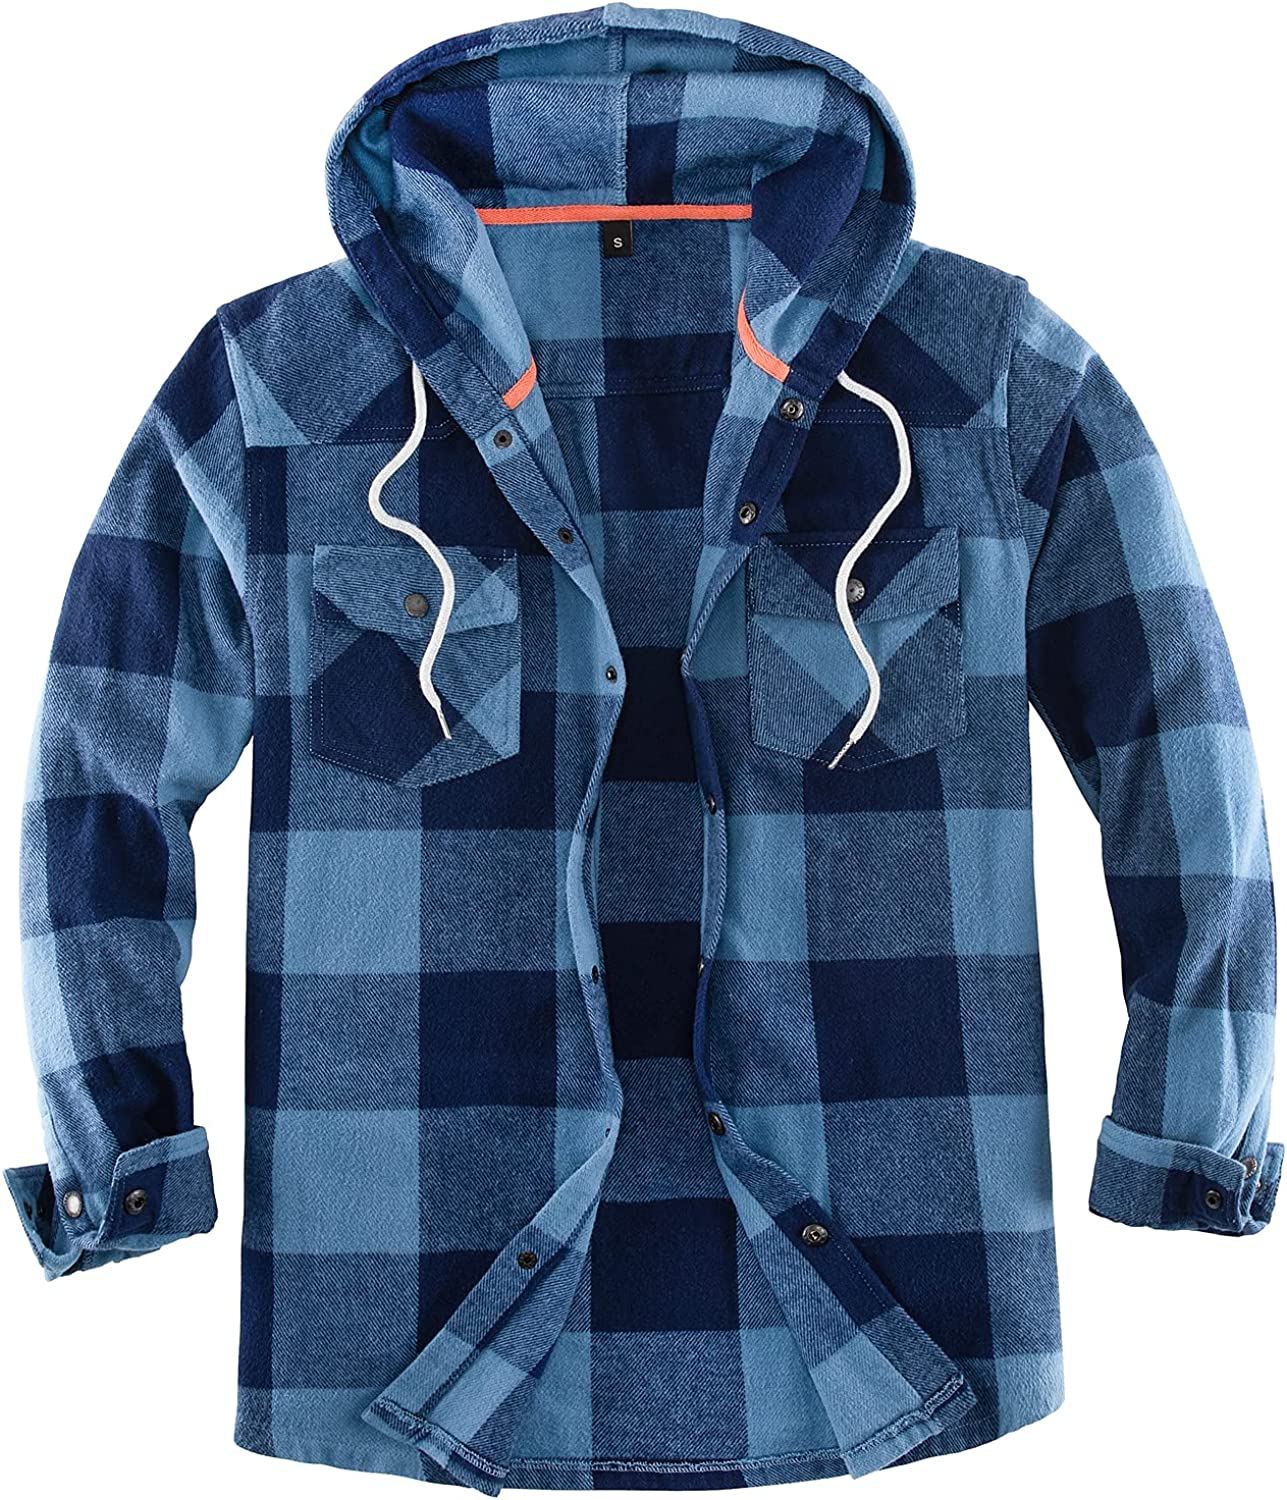 Mens Flannel Jacket with Hood,Plaid Flannel Shirt Jackets with Hand Pockets(Not Paper Thin)